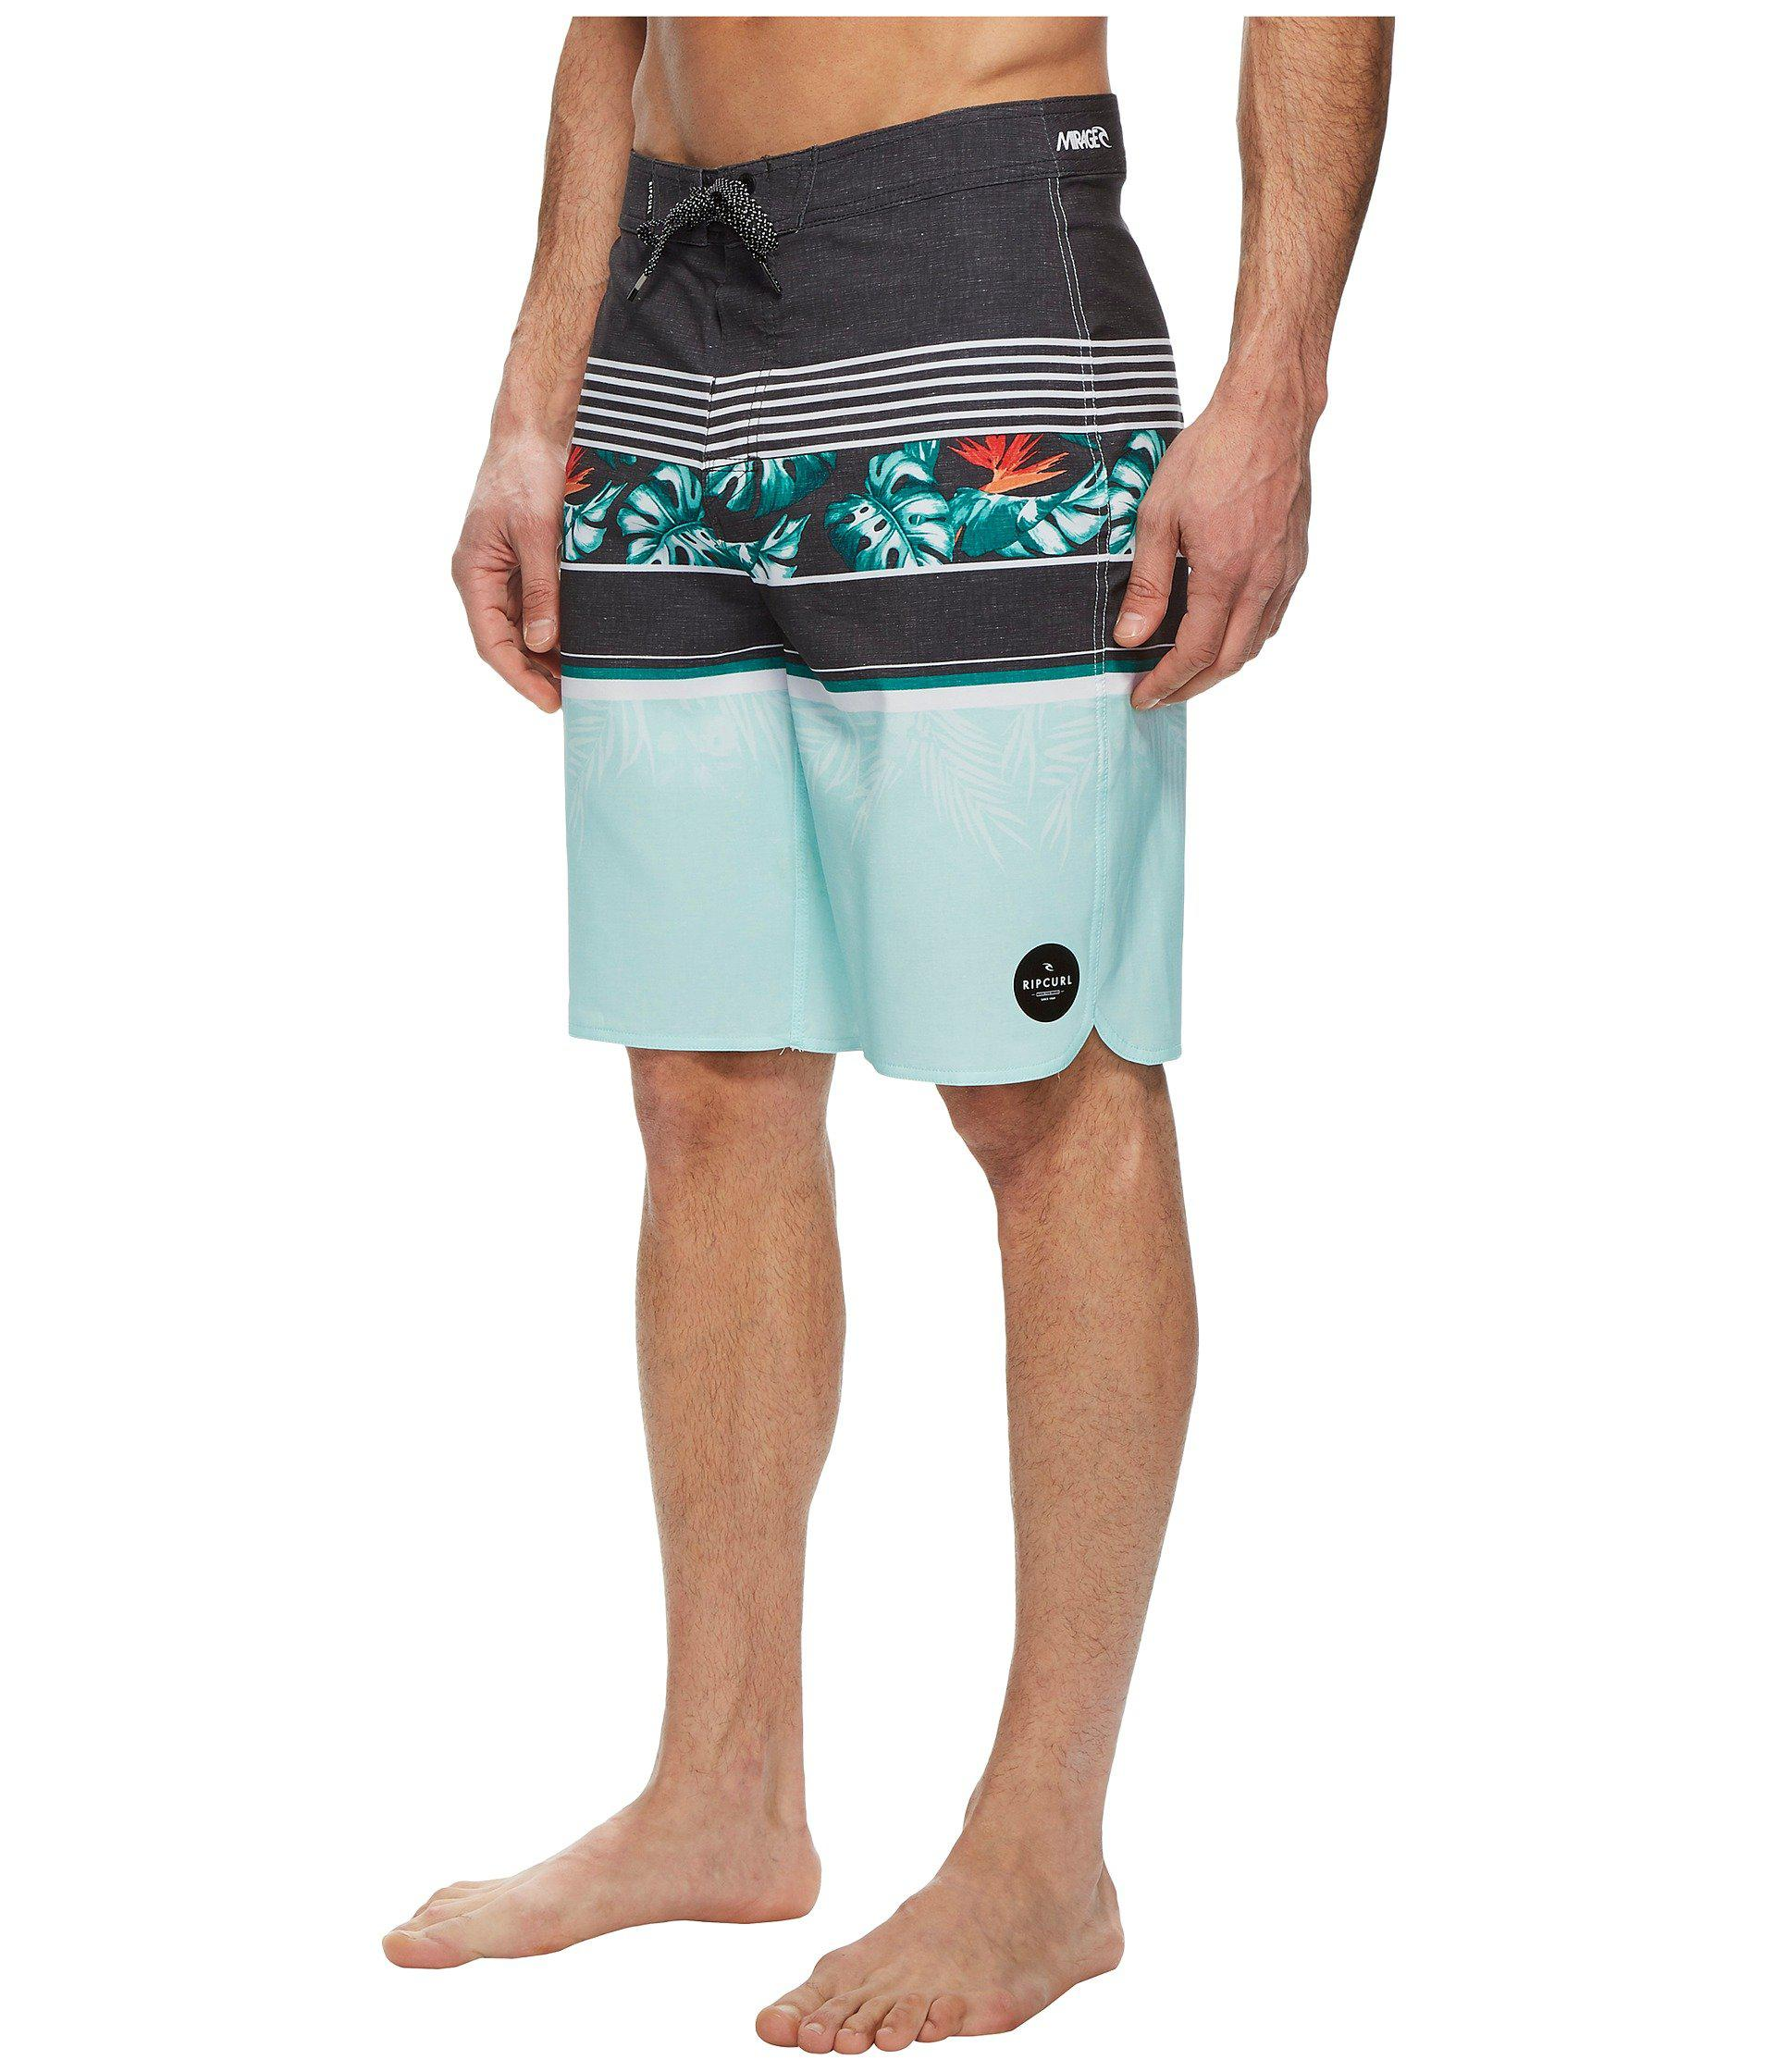 c2eb2ed73c Lyst - Rip Curl Mirage Sessions Boardshorts in Blue for Men - Save  43.58974358974359%